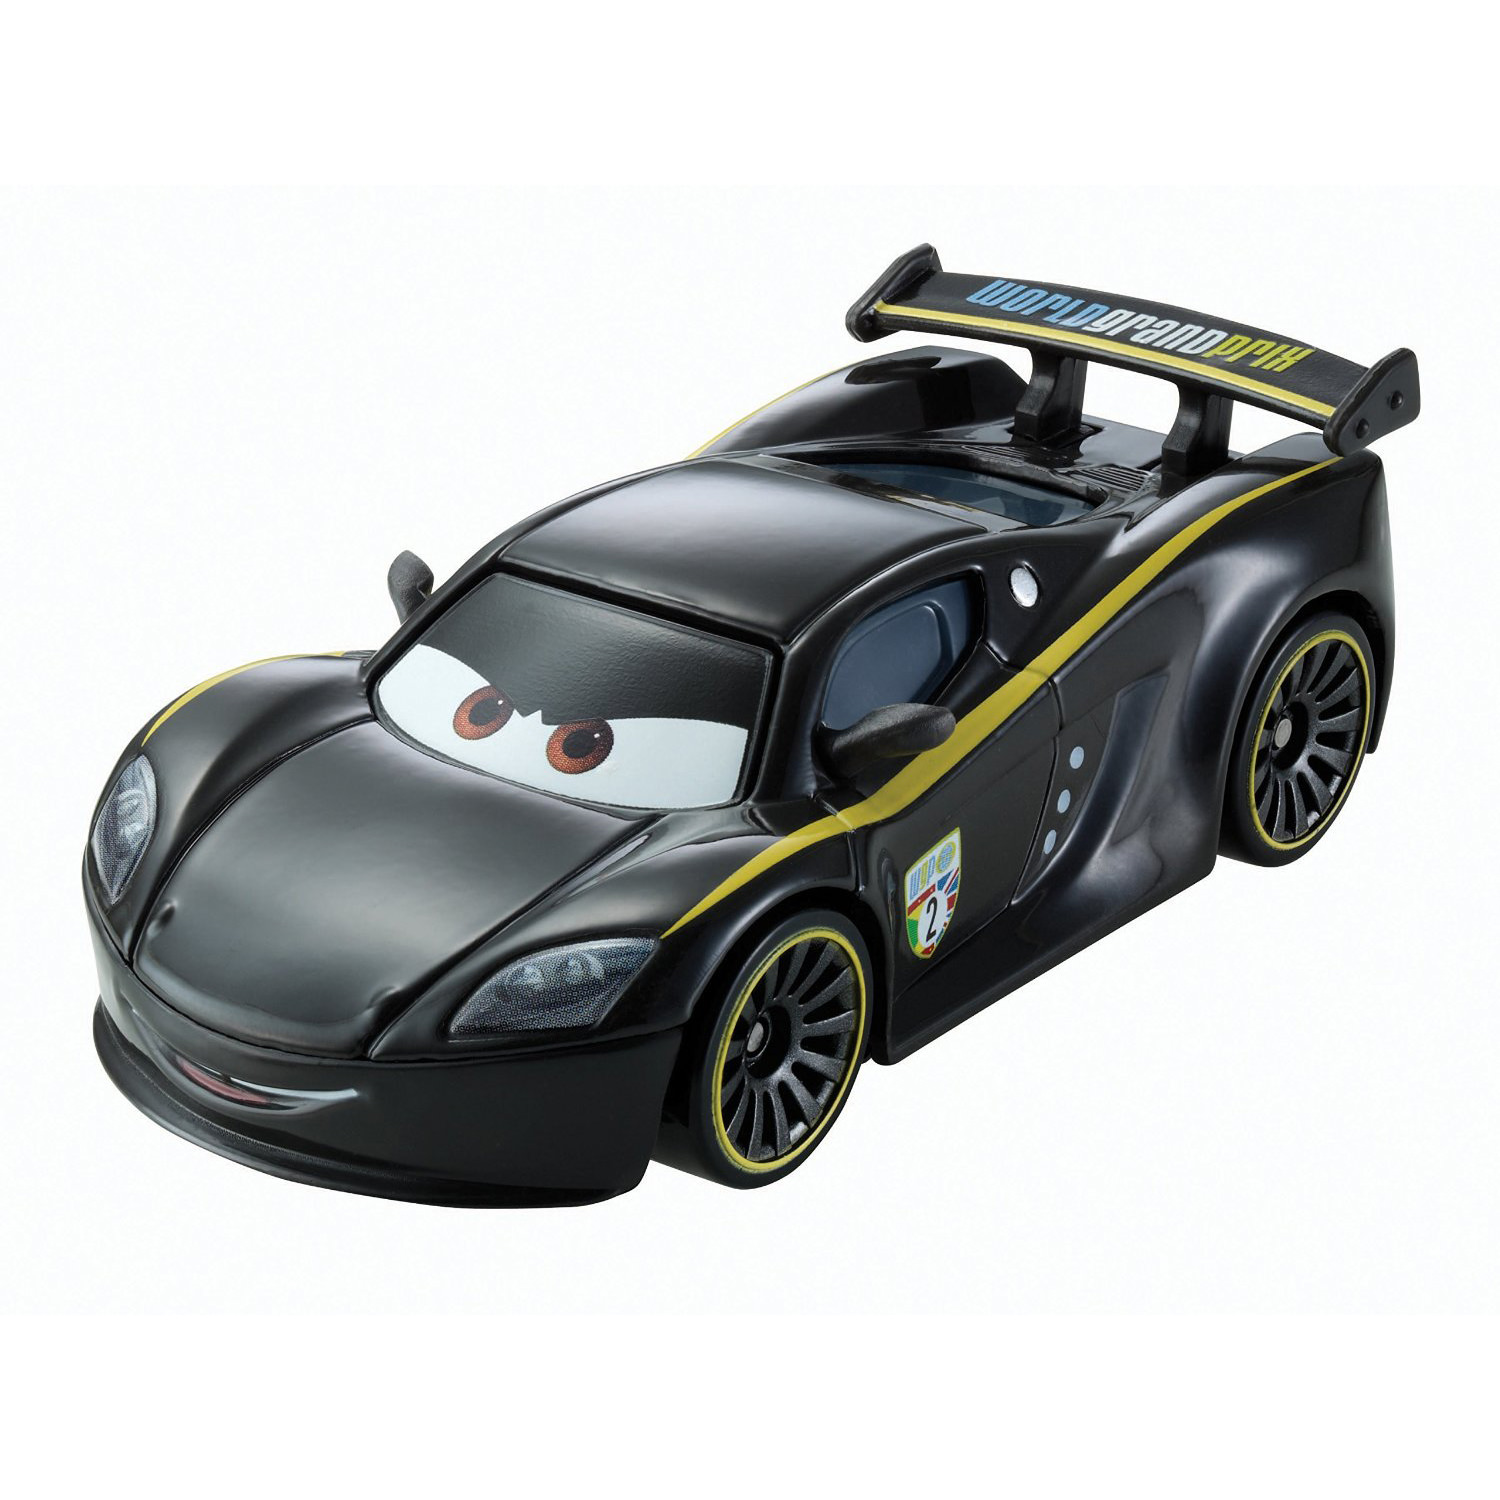 Pixar Cars 1:55 Scale Diecast Character